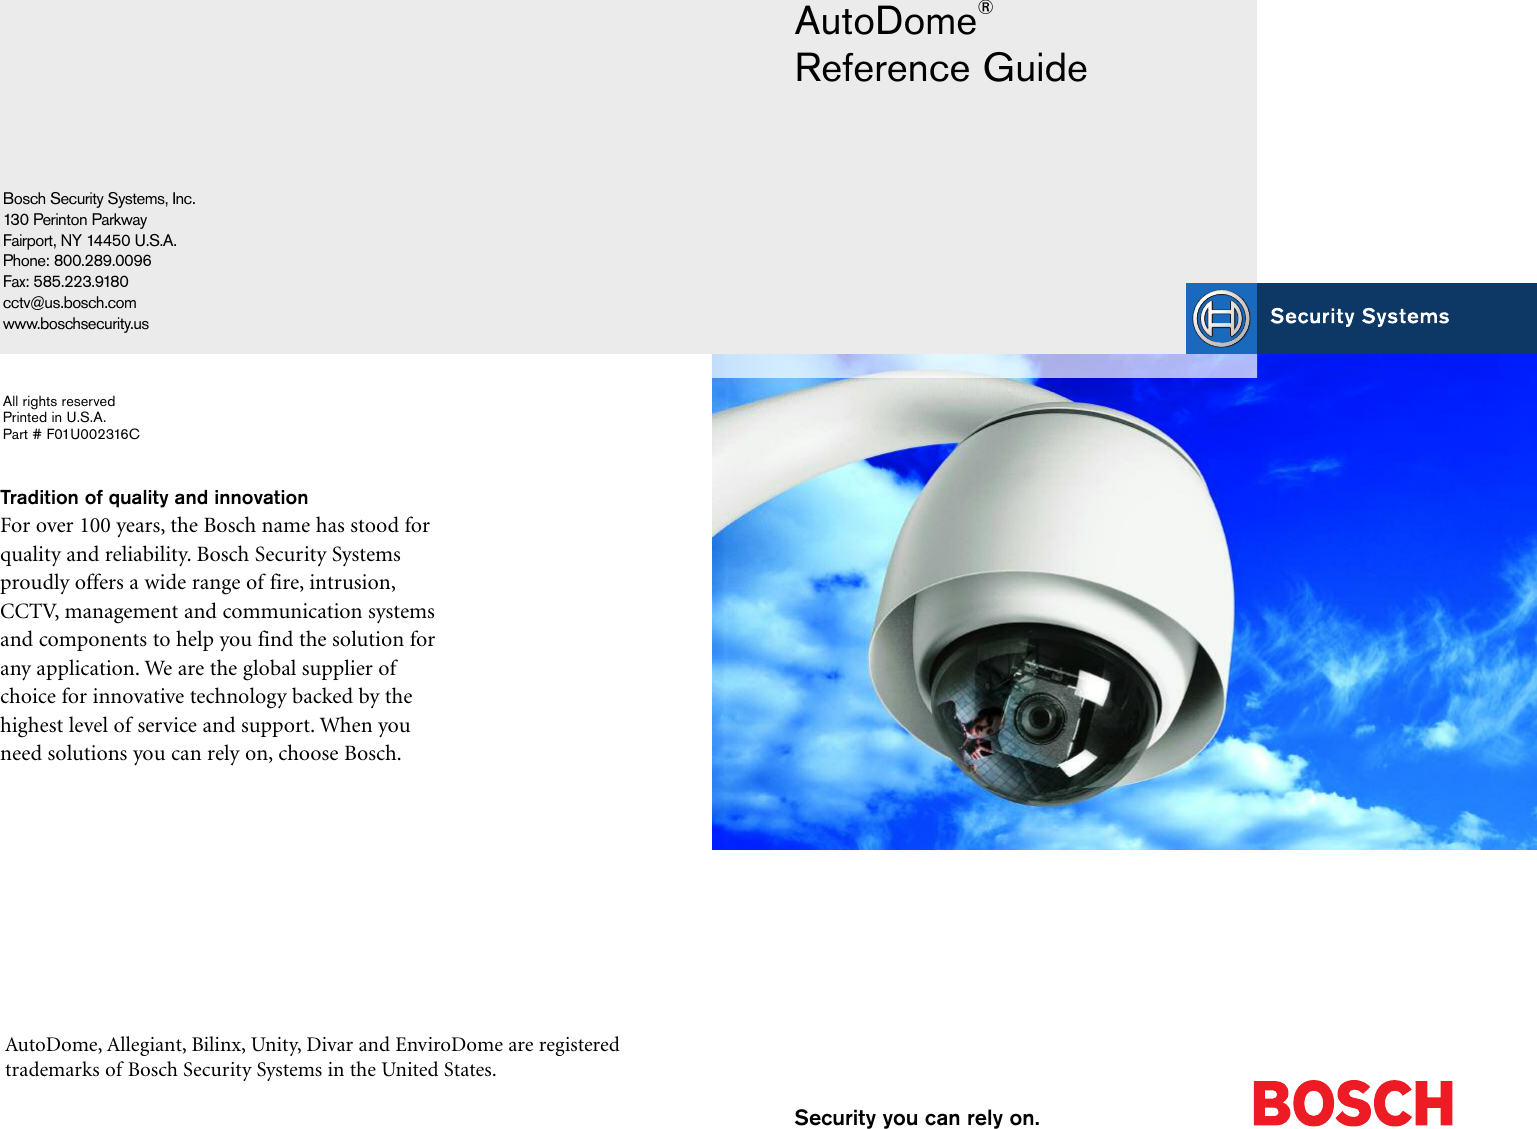 Boschhome bosch appliances security camera f01u002316c users manual page 1 of 12 boschhome boschhome bosch appliances security camera cheapraybanclubmaster Image collections